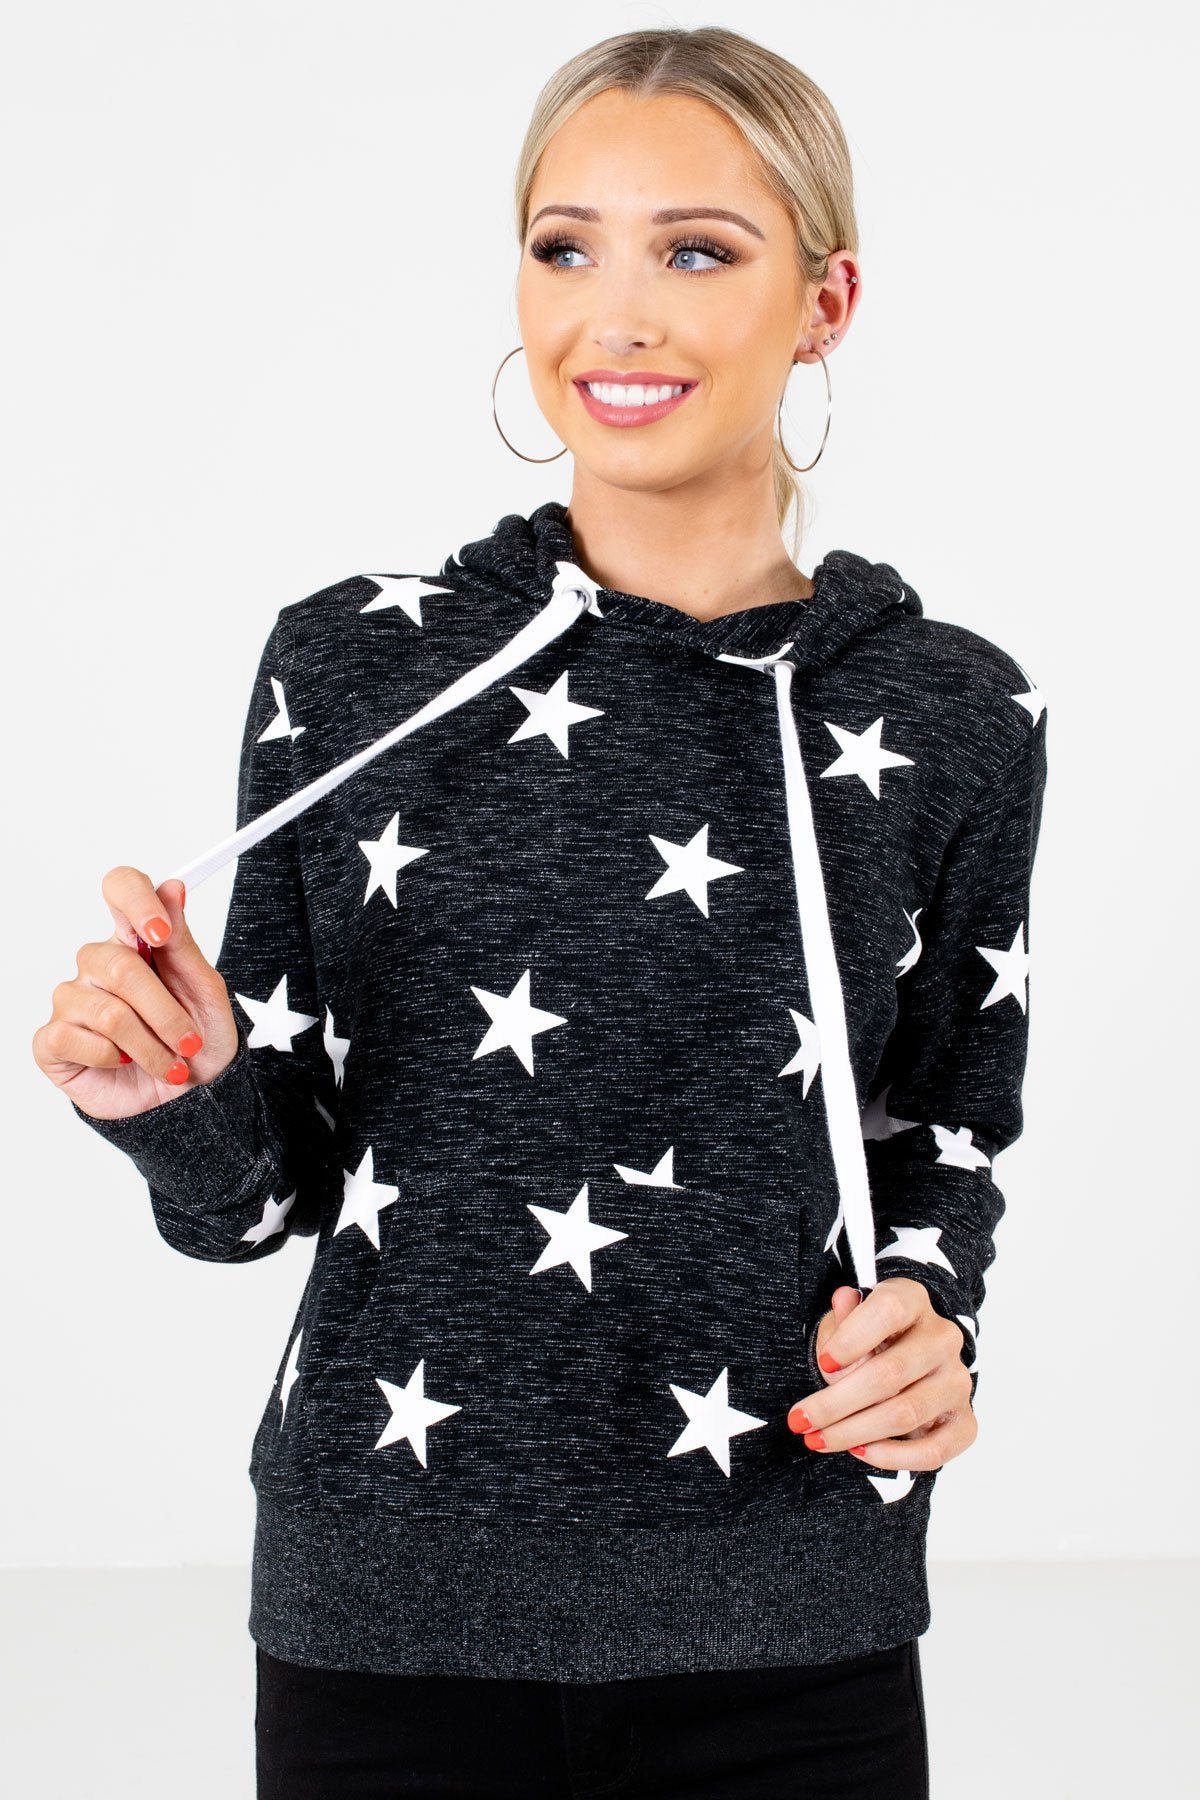 Heather Black and White Star Patterned Boutique Hoodies for Women